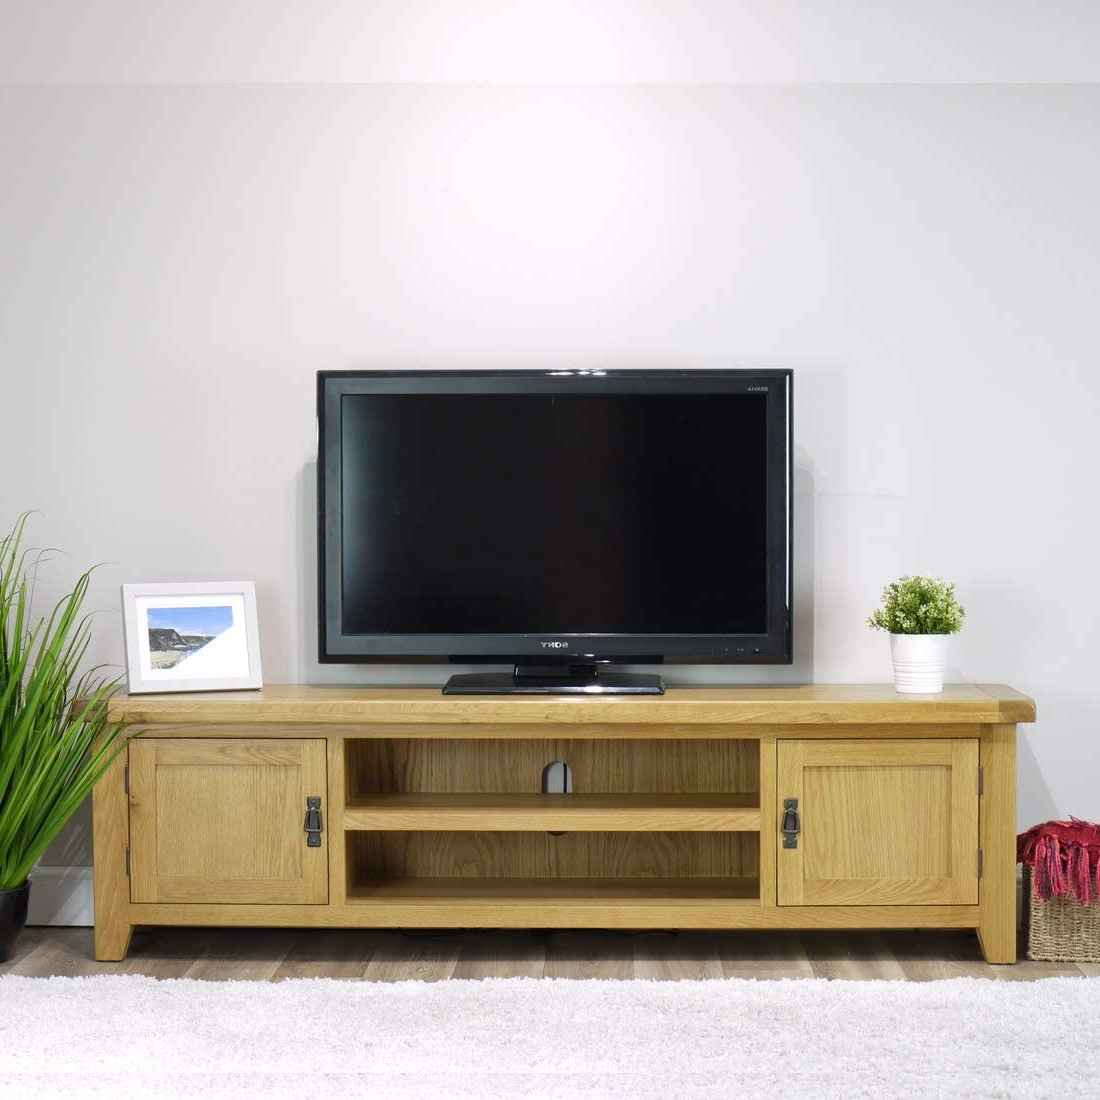 Chromium Extra Wide Tv Unit Stands With Regard To Well Known Arklow Oak Extra Large Tv Stand For 65 Inch Tv / 180cm (View 3 of 10)